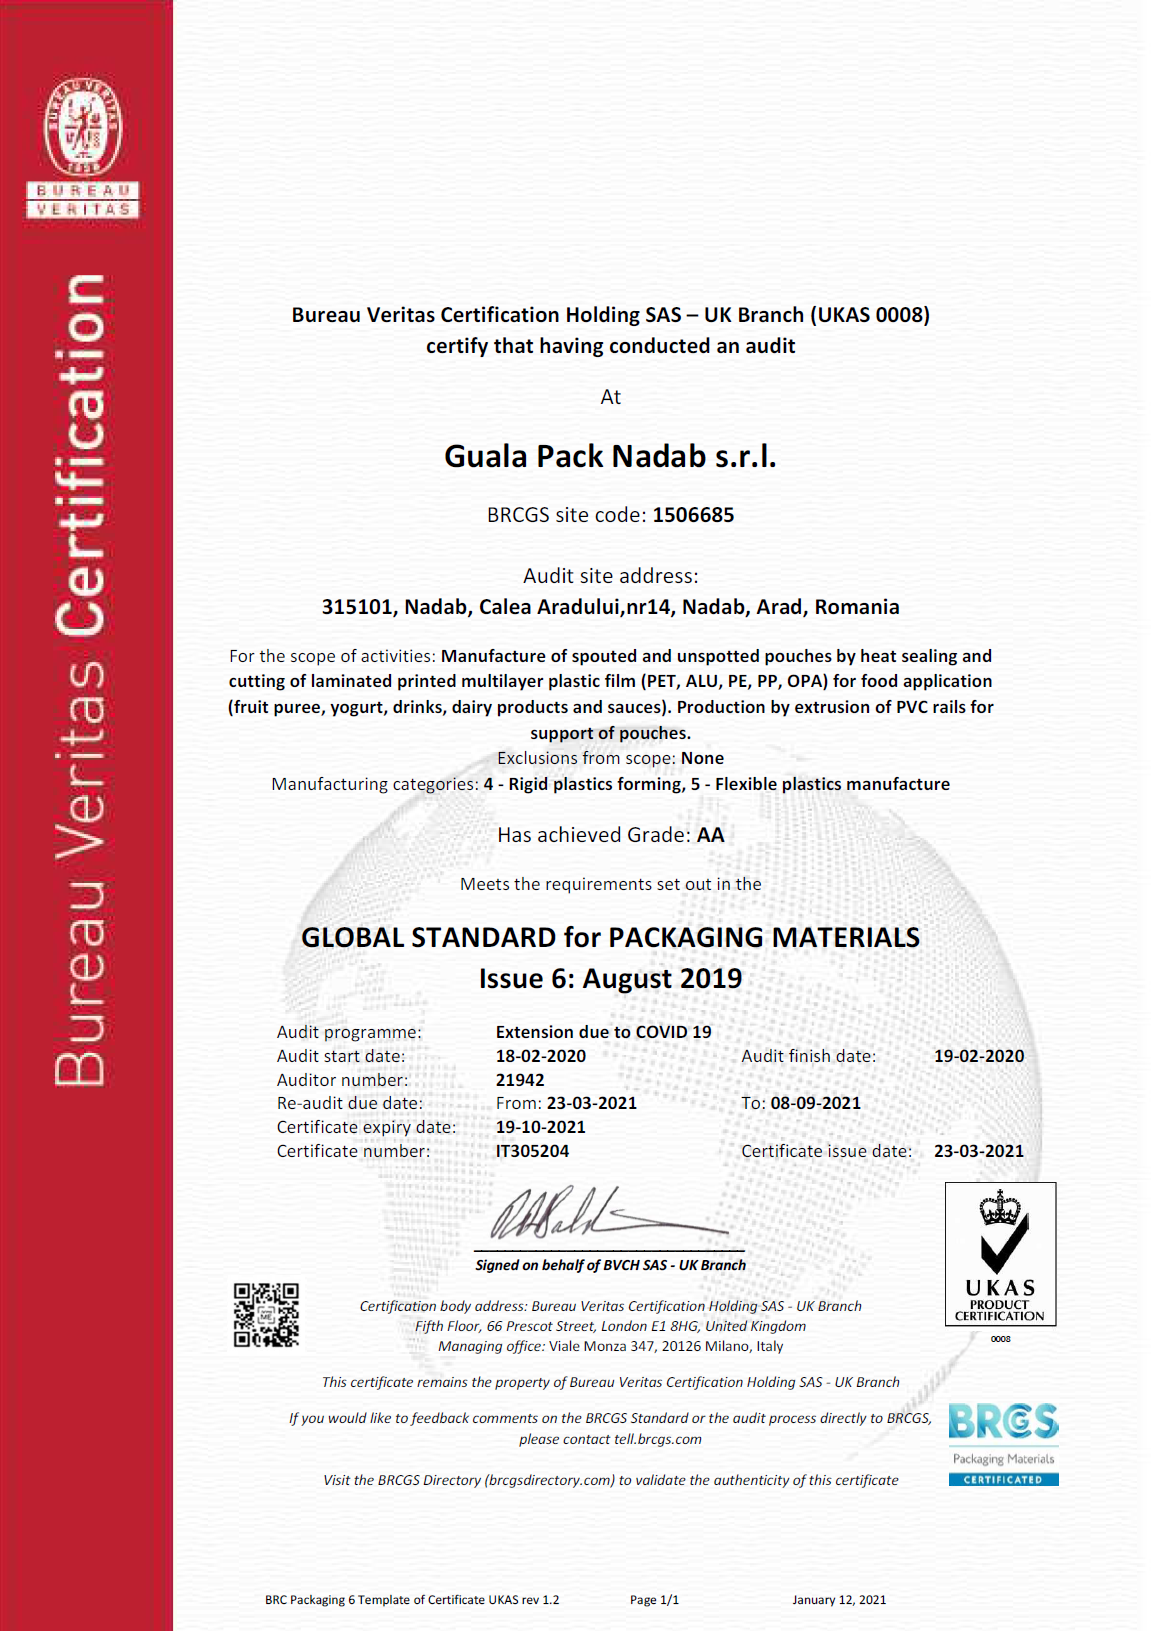 GUALA PACK NADAB SRL_RISK ASSESSMENT CERTIFICATE_2021_BV BACKGROUND